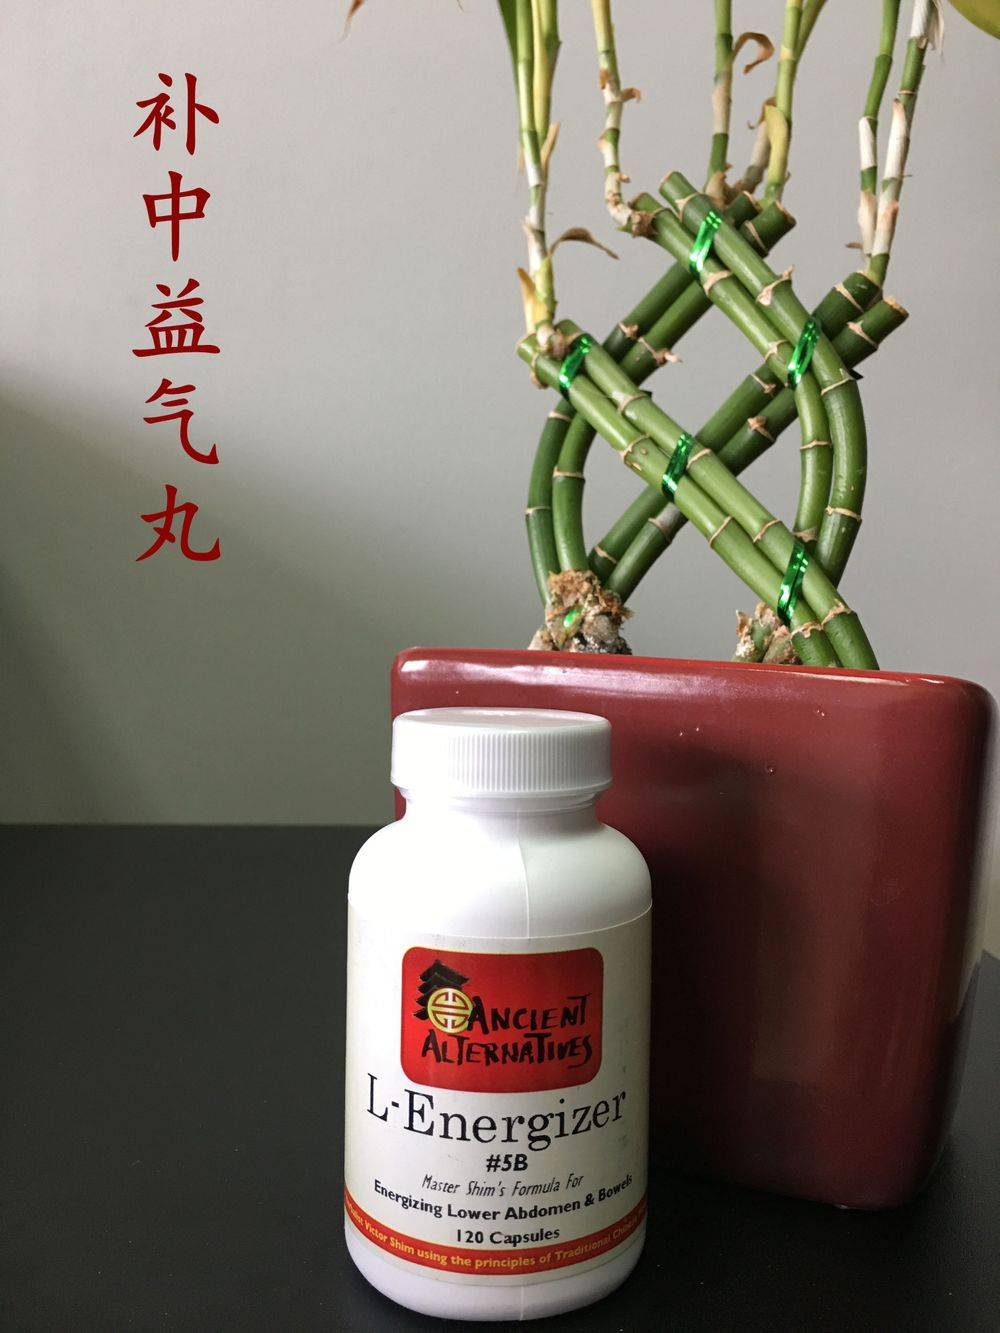 Correct frequent urination, hemorrhoids and improve food assimilation. (120 capsules)